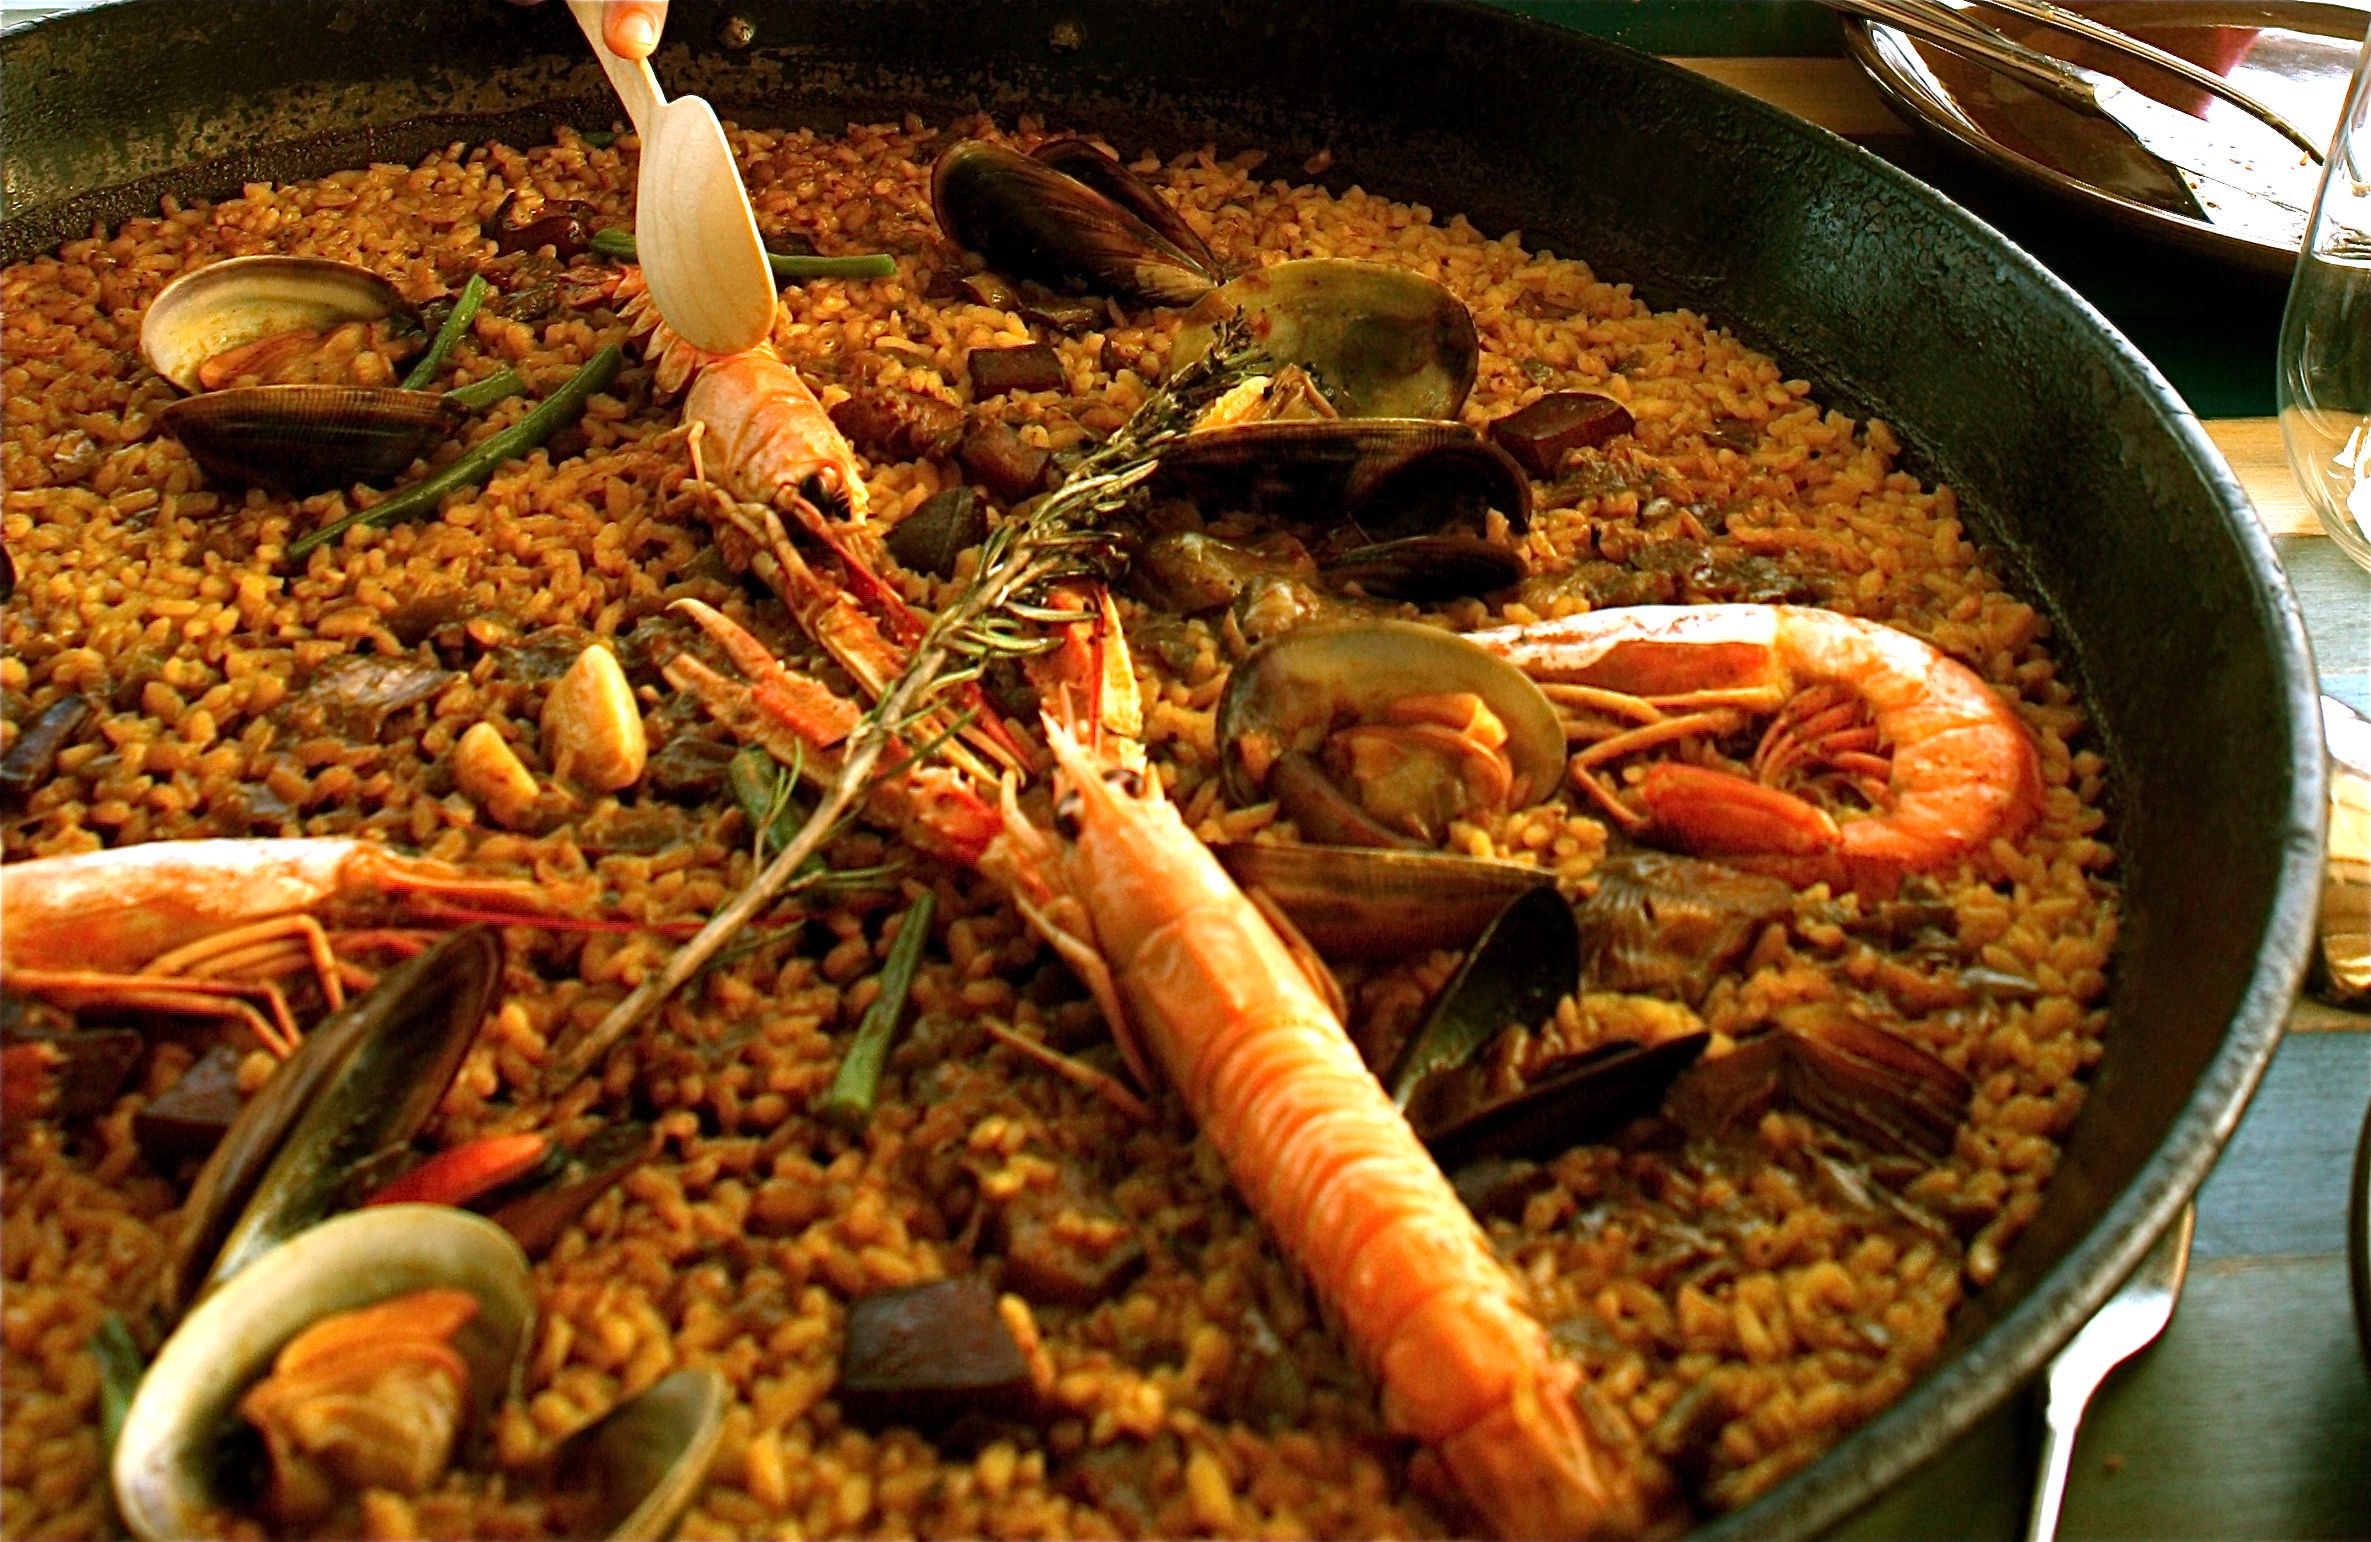 Authentic Seafood Paella at Barceloneta beach...really the taste of summer! http://rainbowspoon.com/